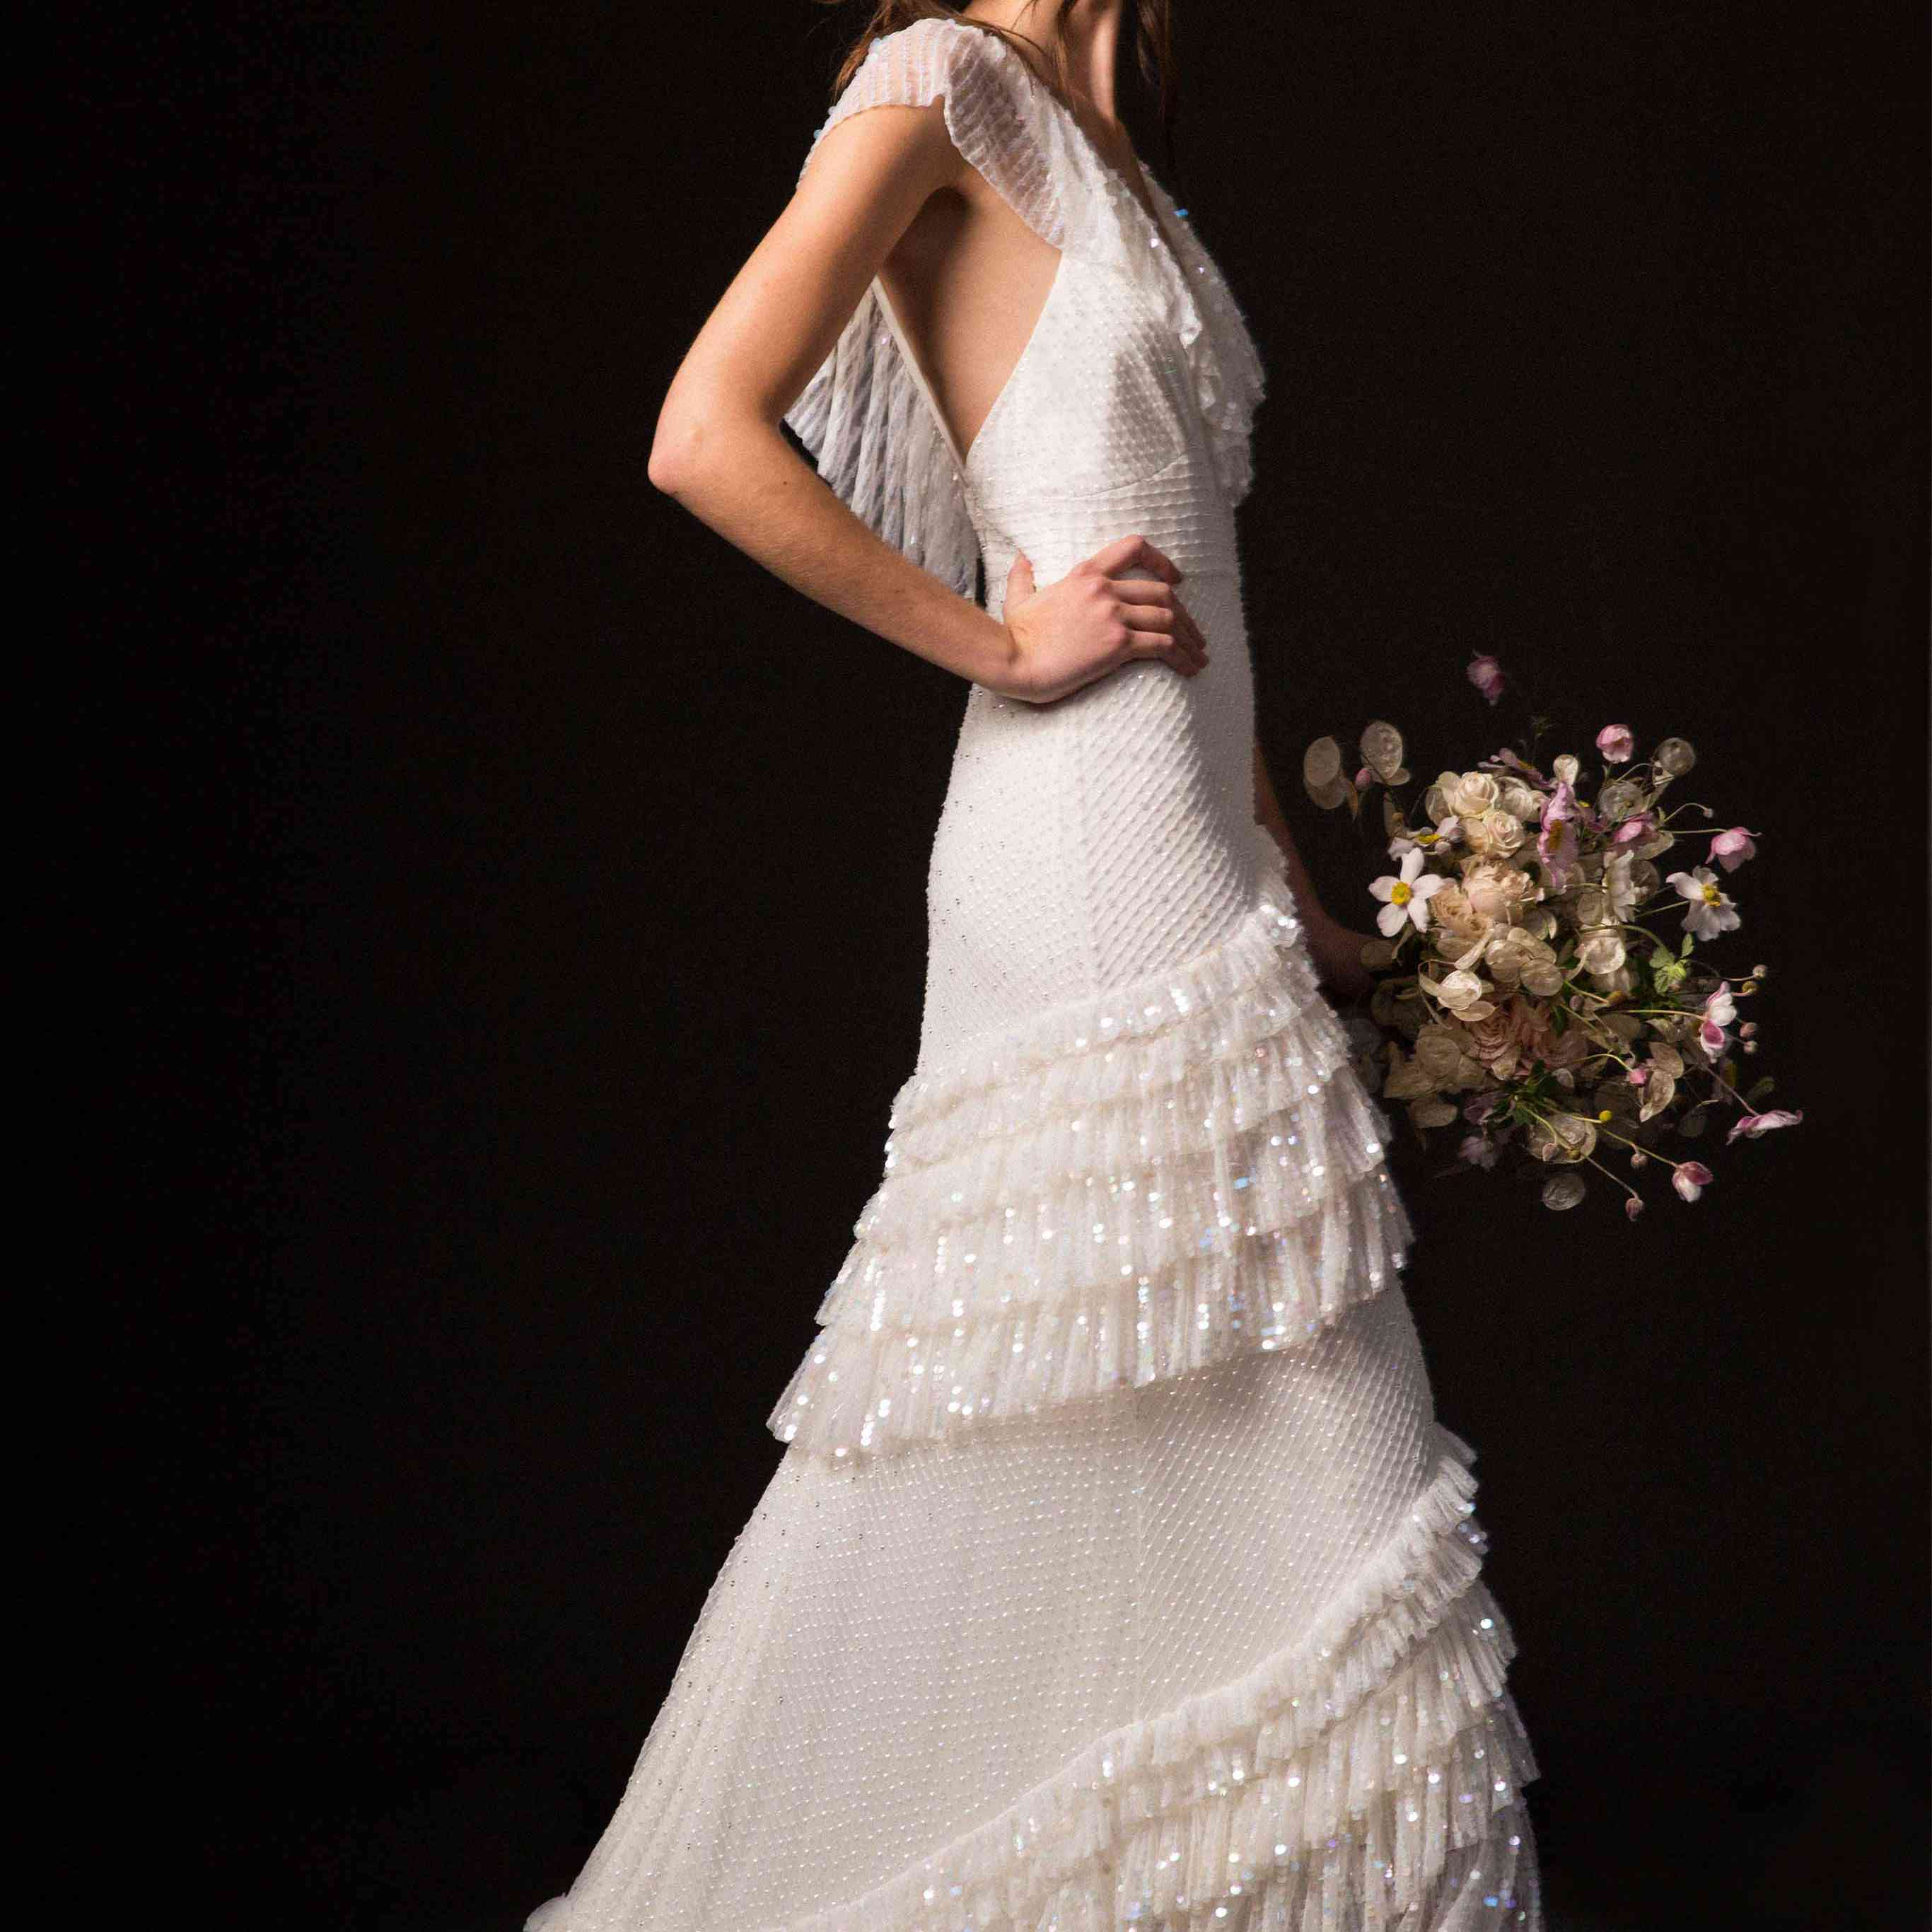 Model in ruffled wedding dress with sequins